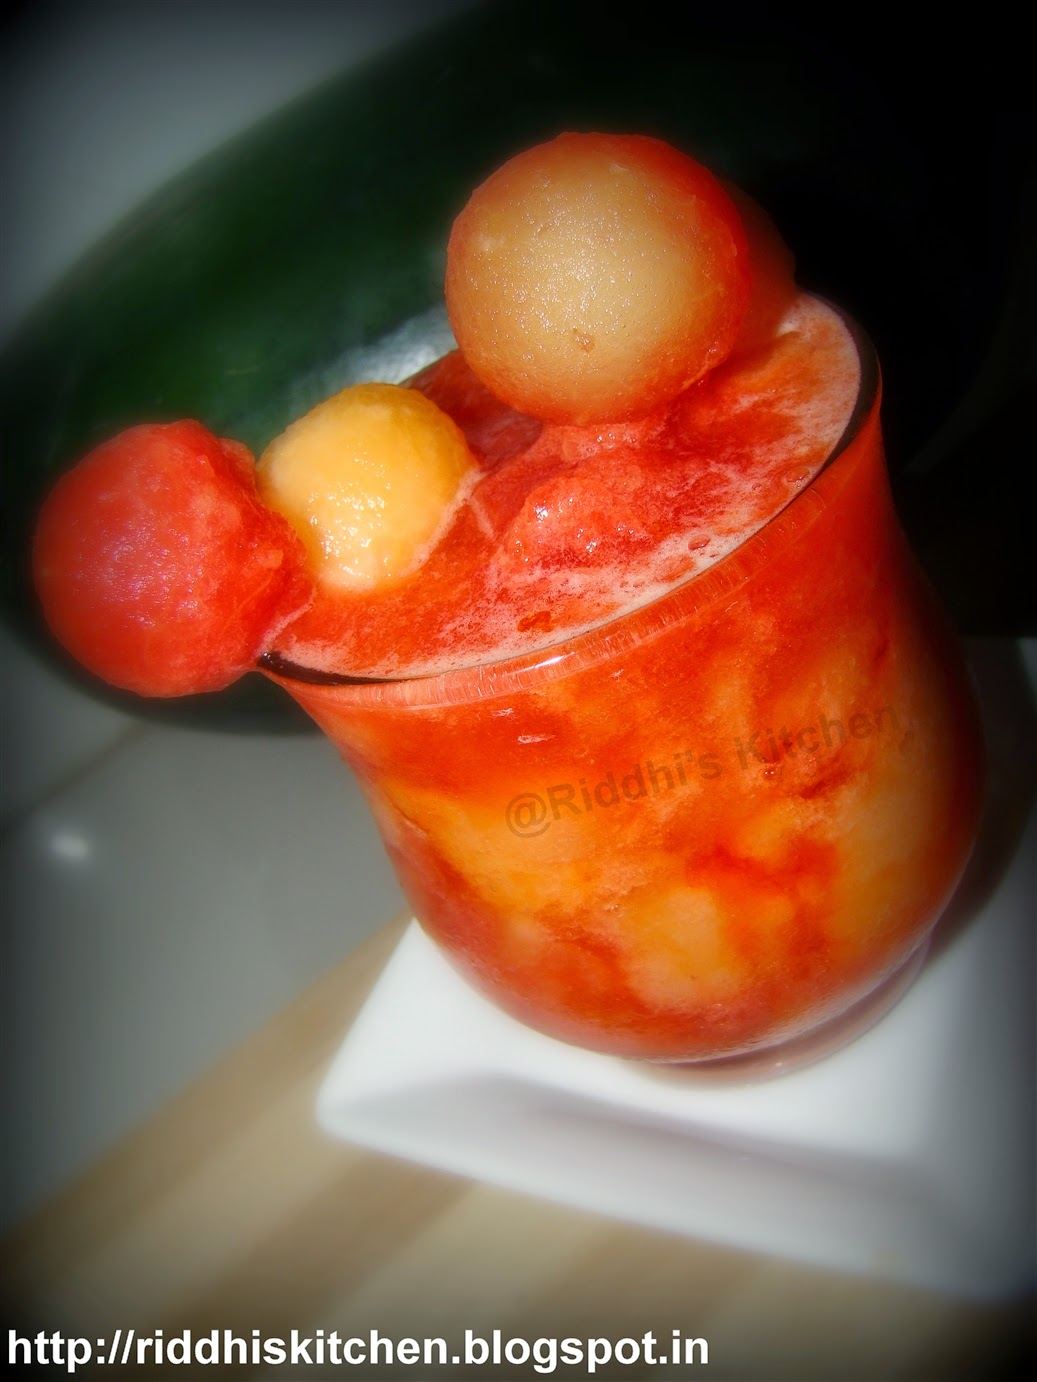 Food Gamut - New spectrum of Food: Melon Slush (watermelon+muskmelon)